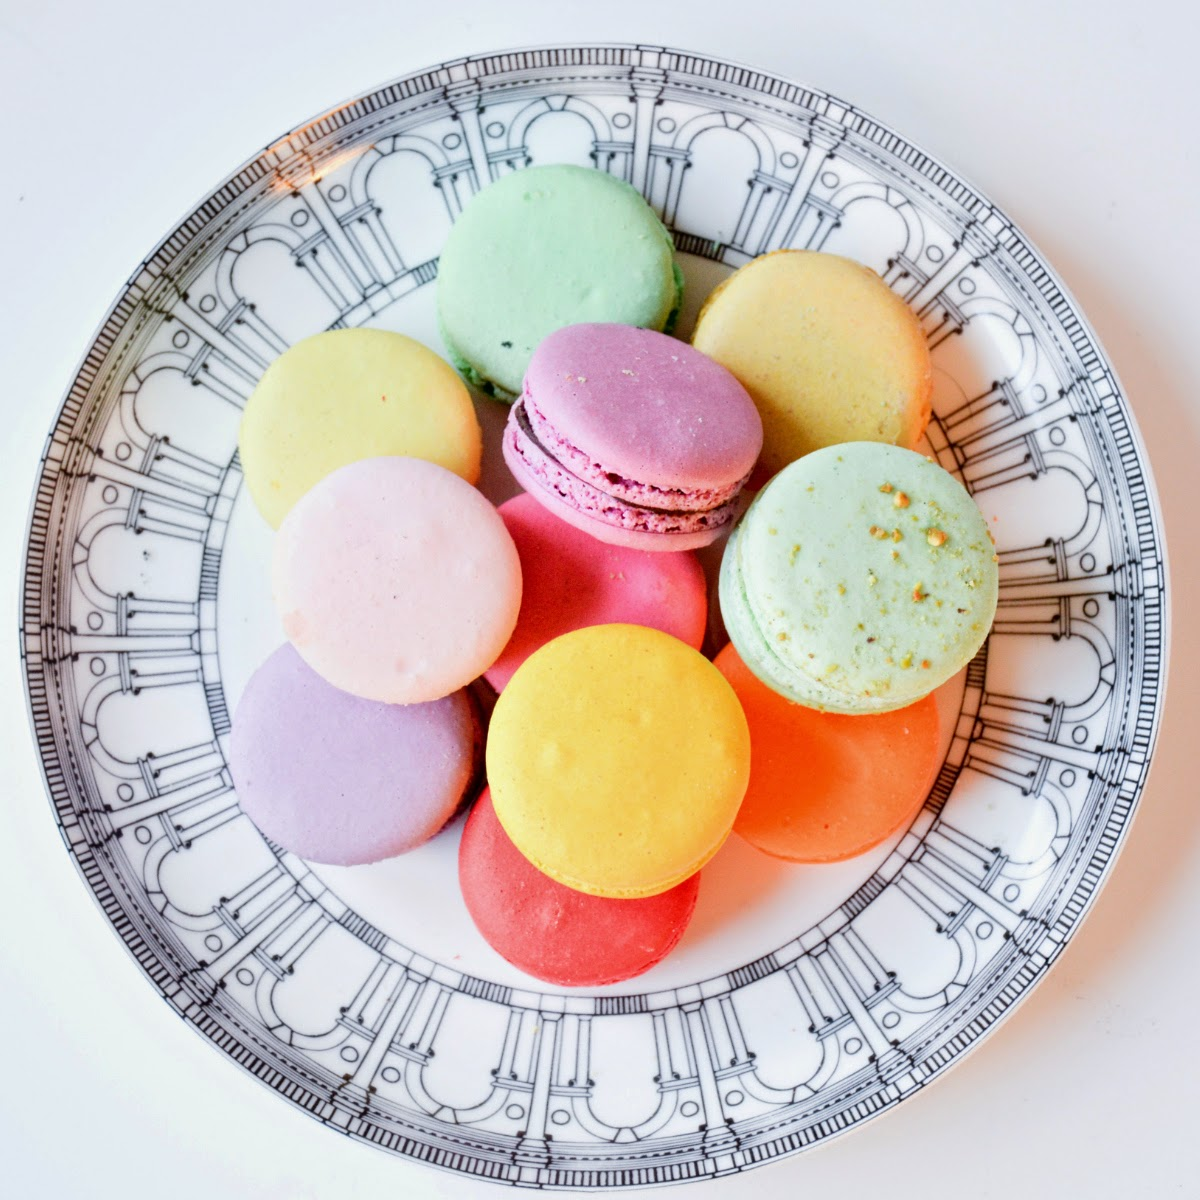 colorful Macarons in Brian Glucktein Architectural series plate from the Husdons Bay